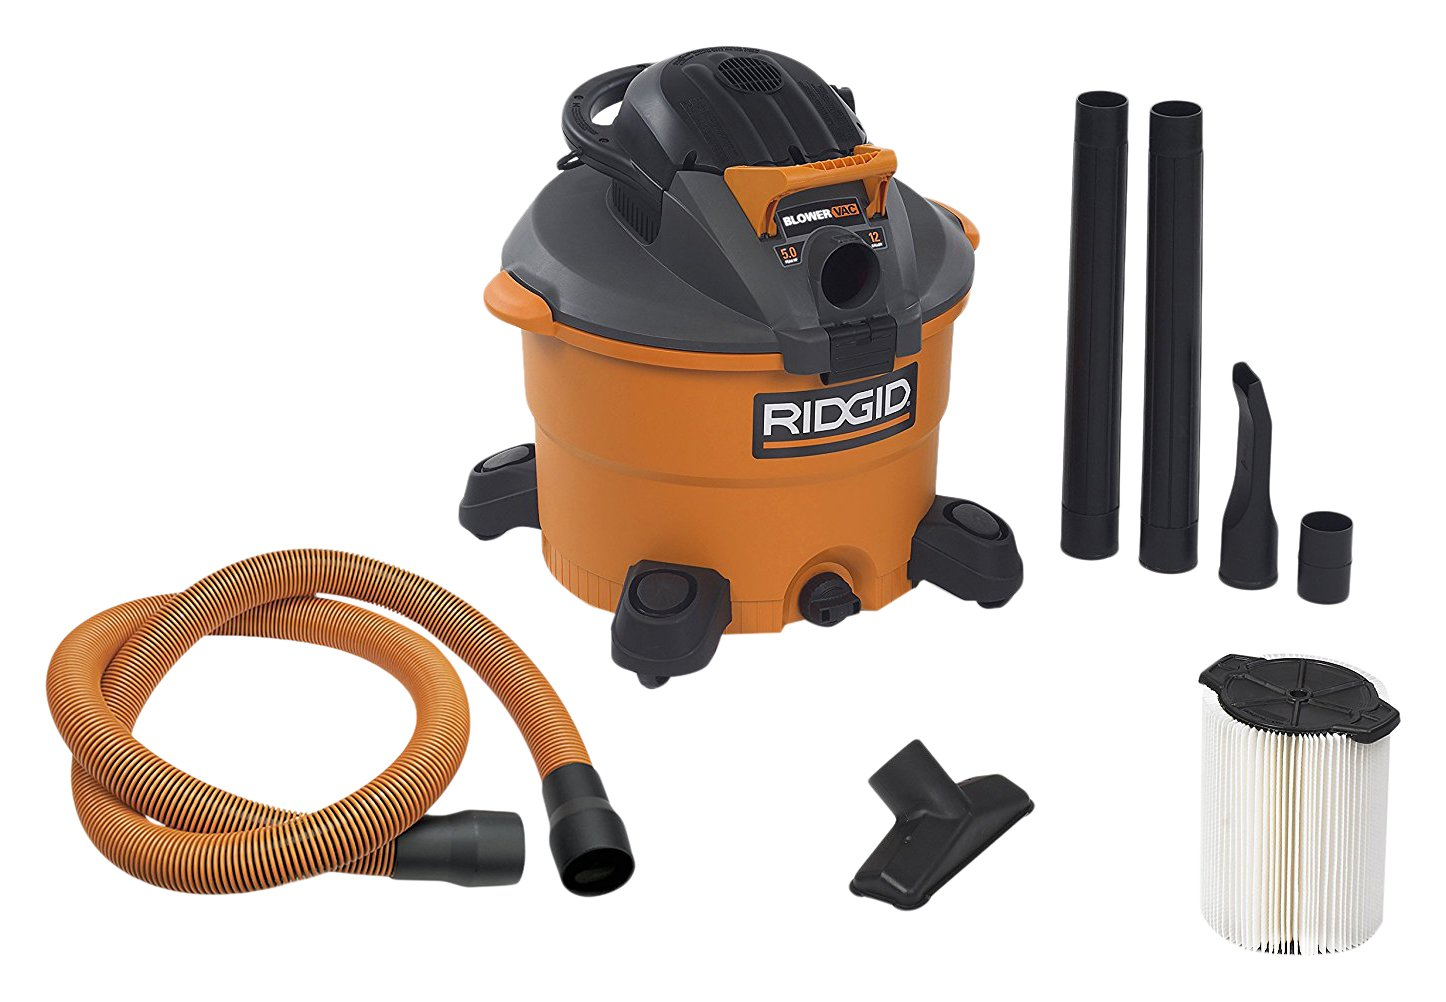 RIDGID Wet Dry Vacuum Cleaners VAC1200 Reviews in 2020 1